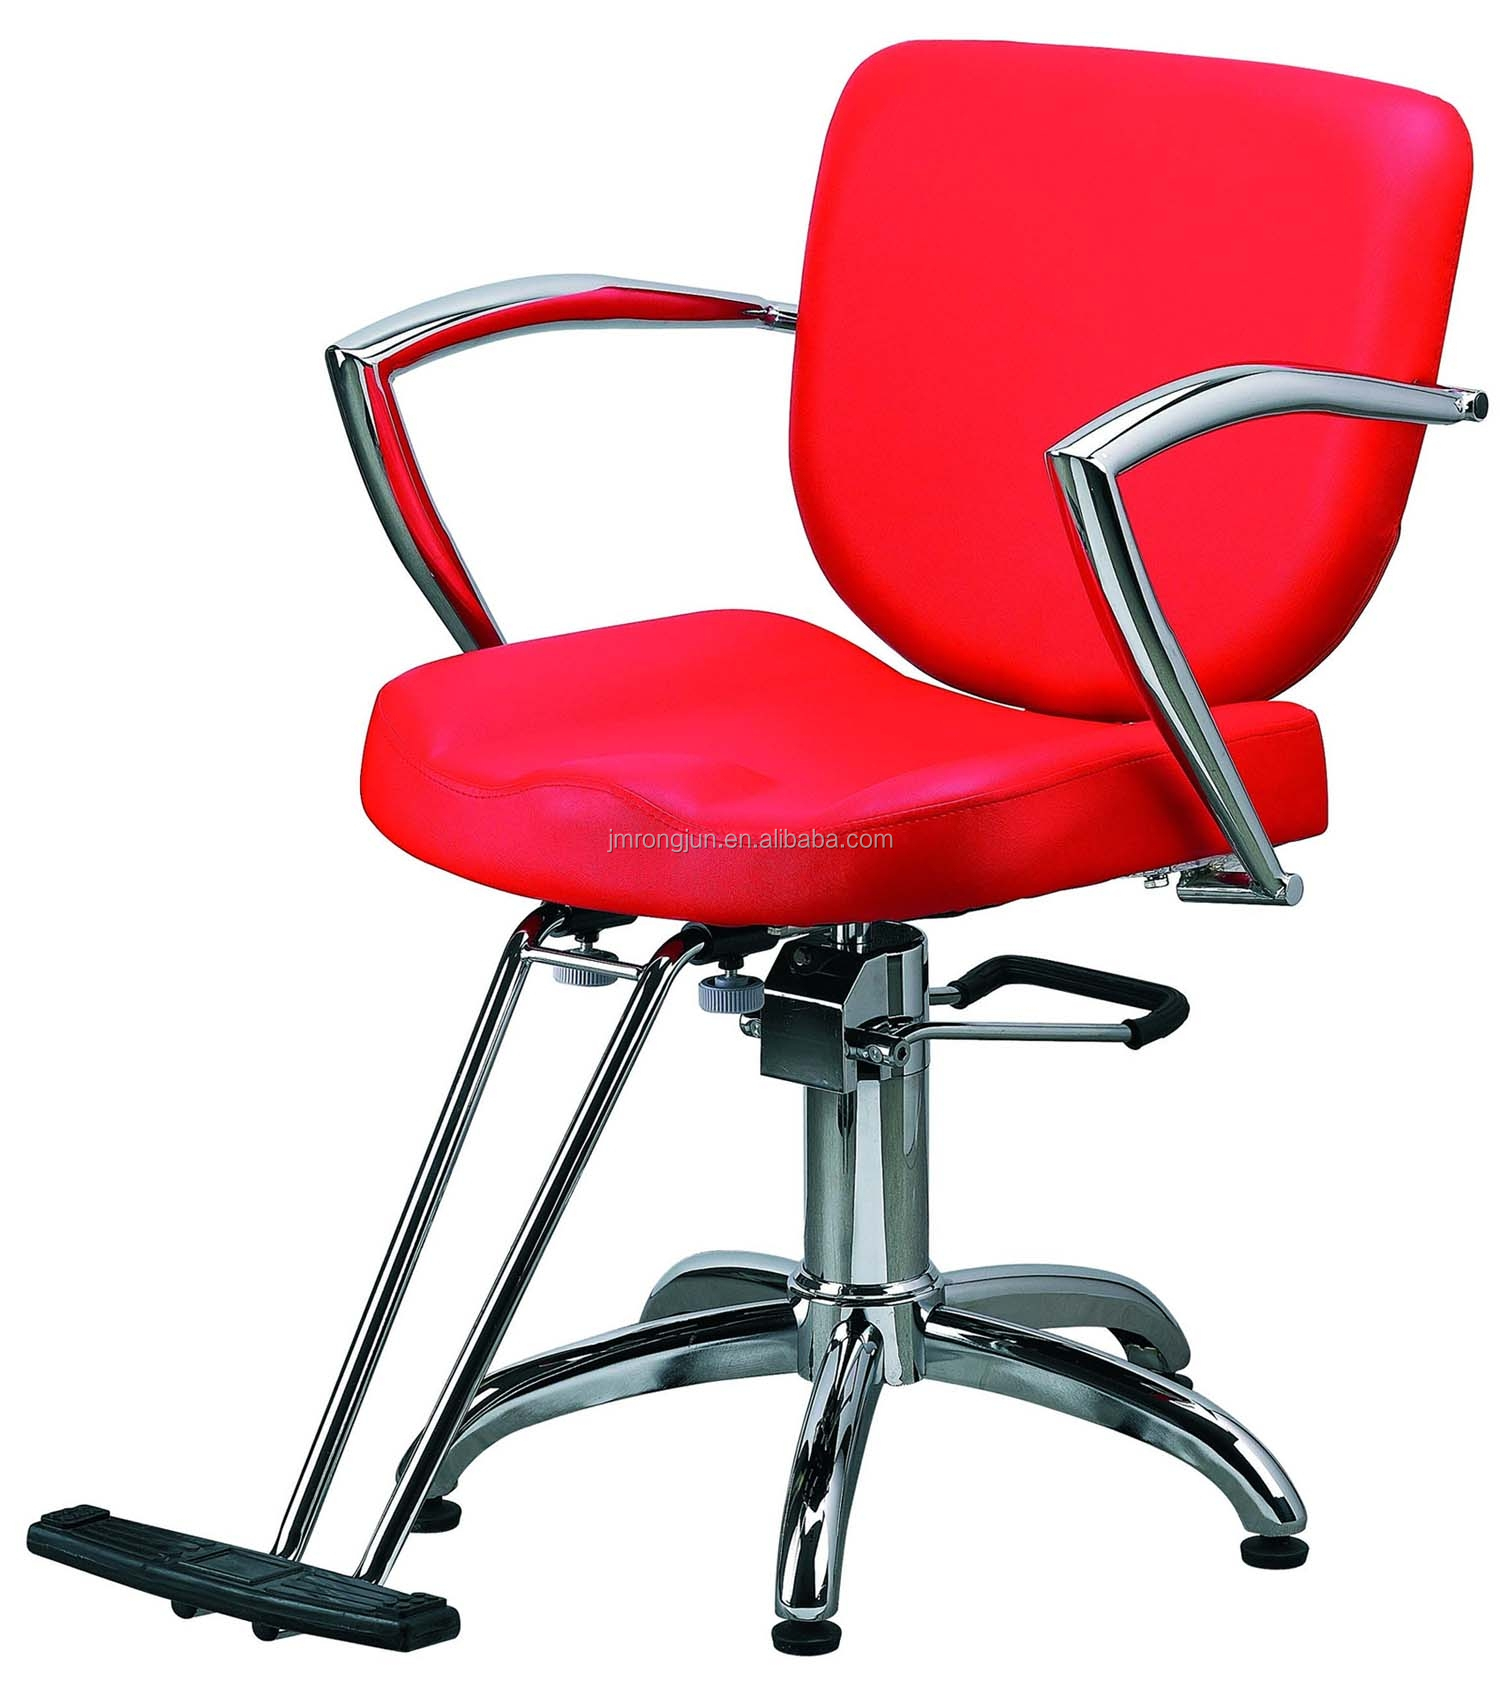 Barber Chairs Antique Barber Chairs Antique Suppliers and